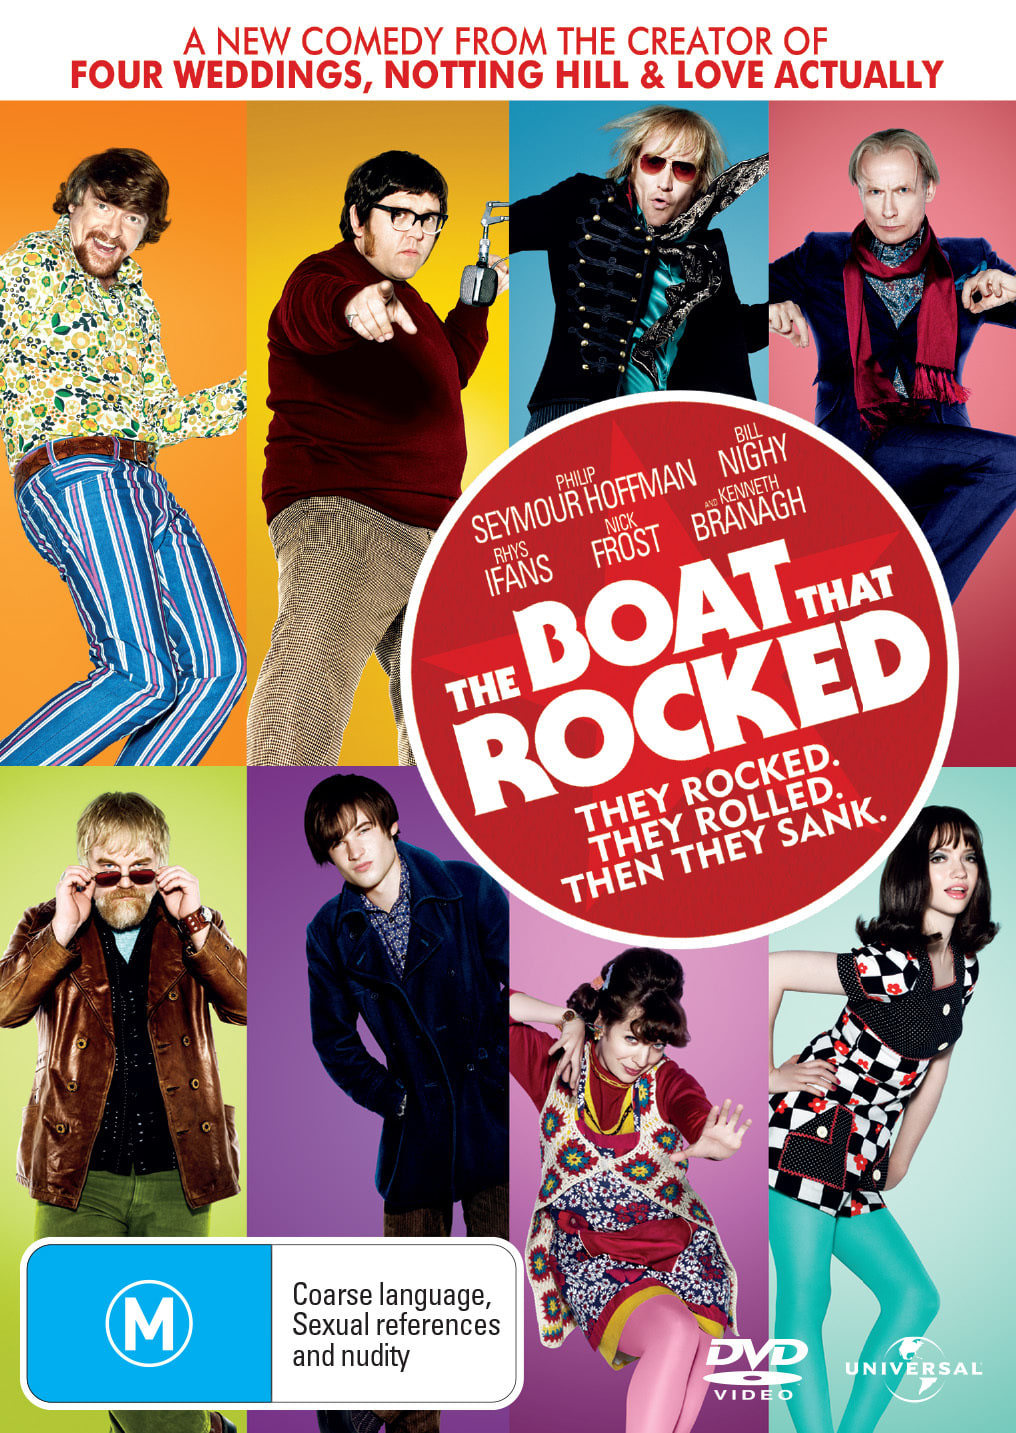 The Boat That Rocked [DVD]